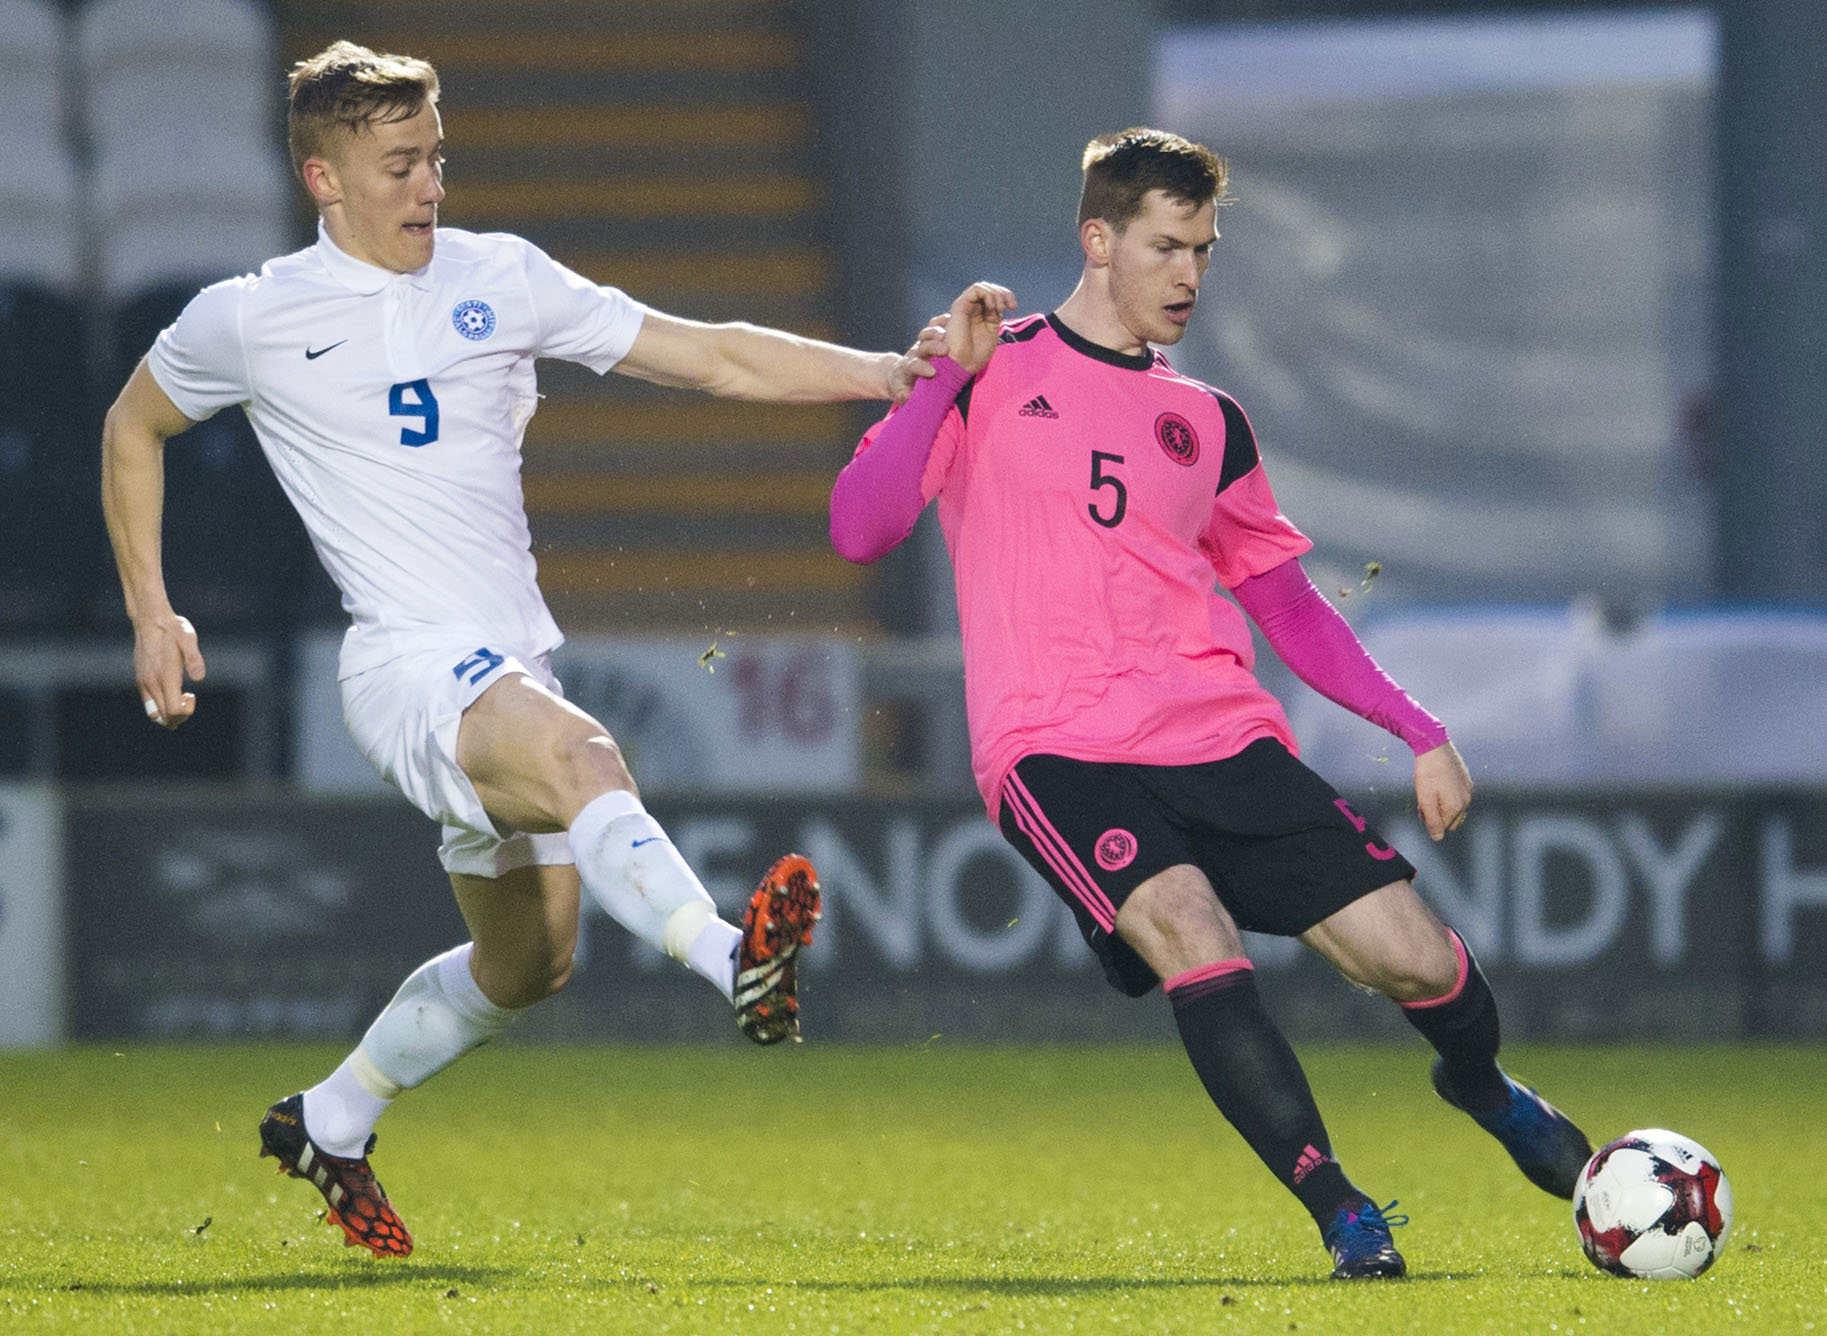 Celtic's Jamie McCart proving himself to be one of the best young players in Scotland